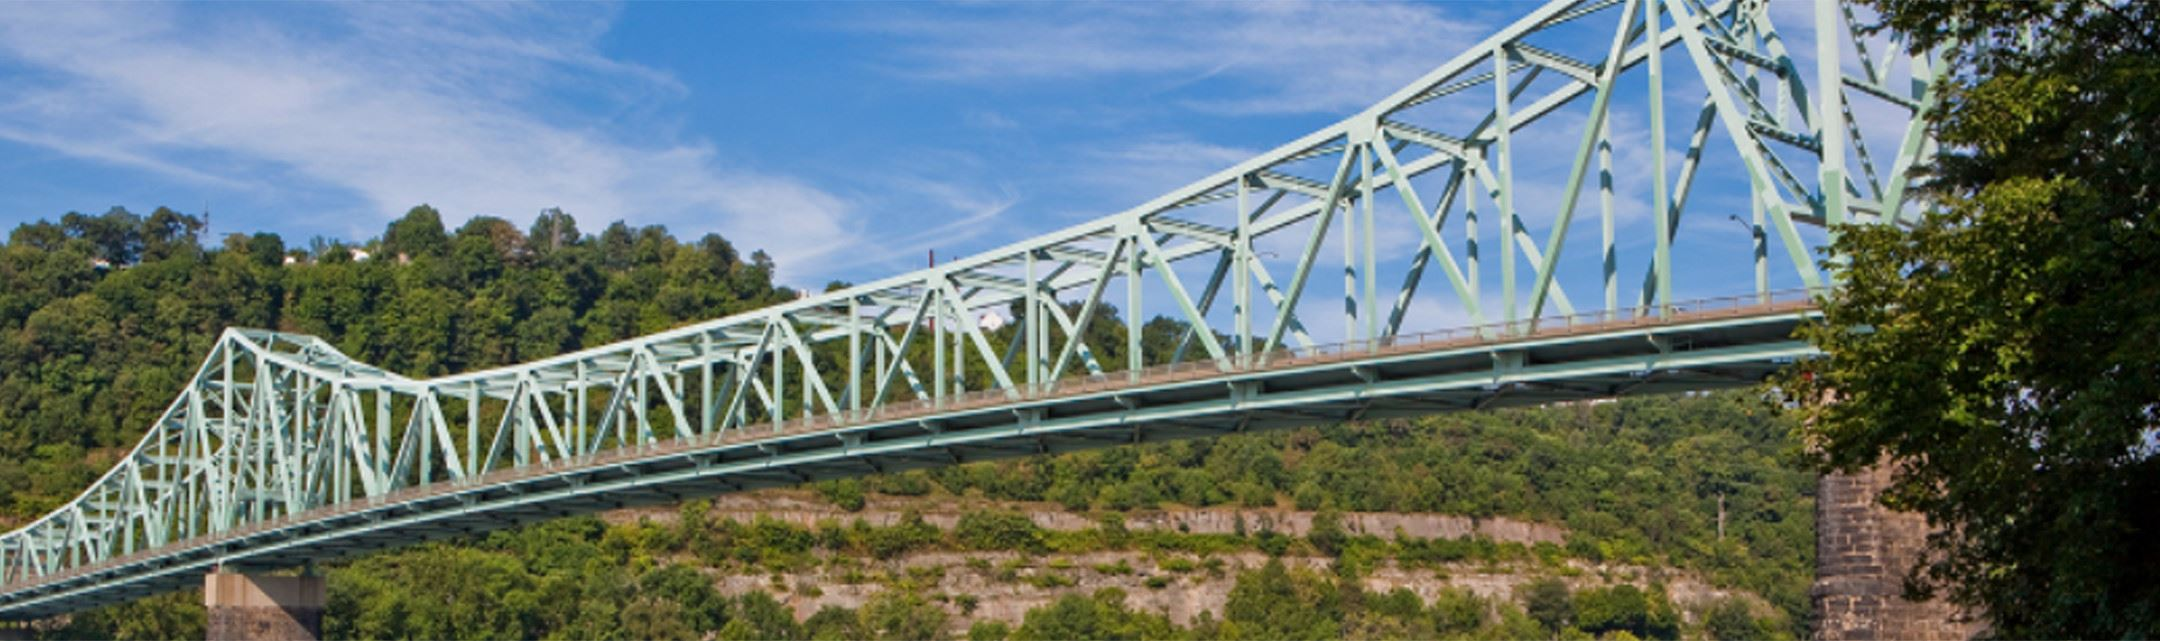 Sewickley Bridge in the summer